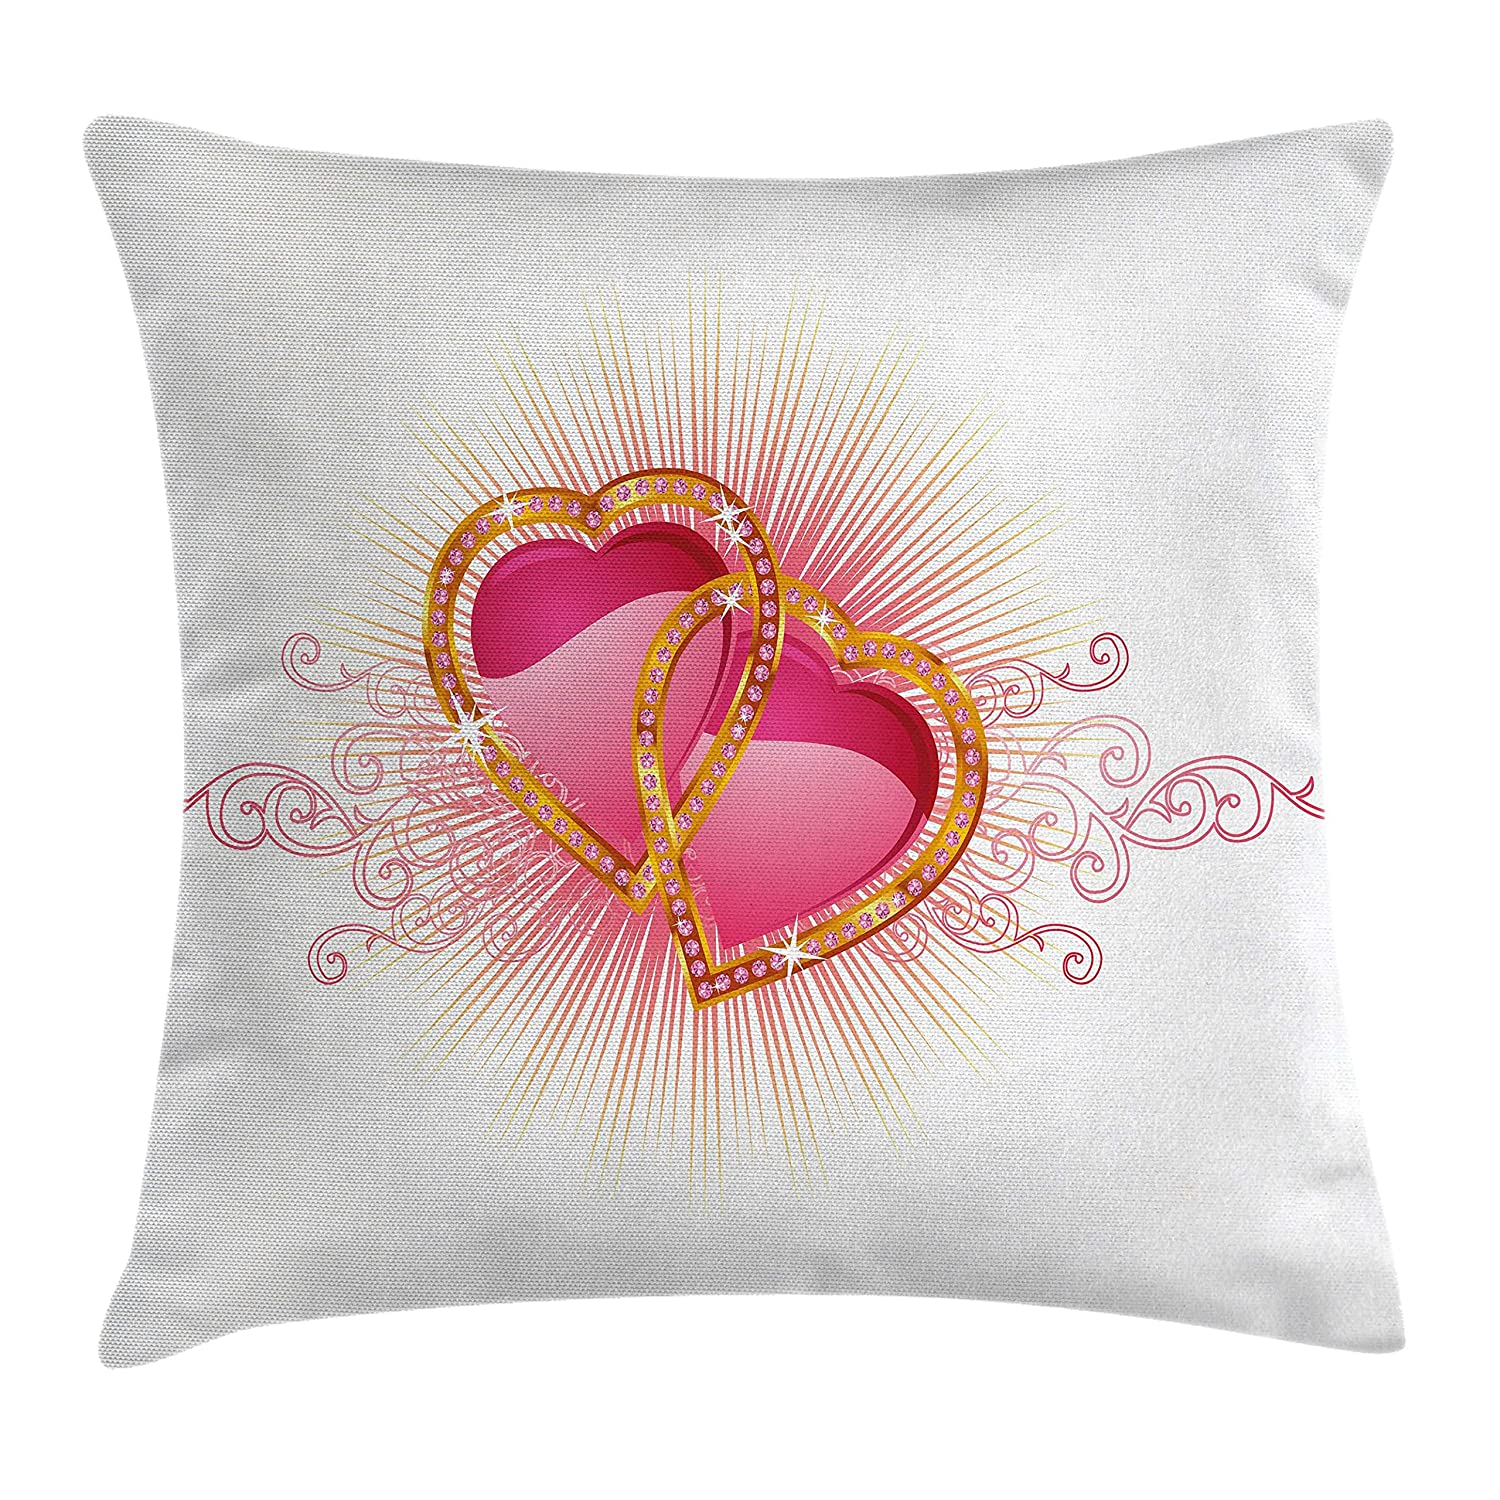 Amazon.com: Ambesonne Engagement Party Throw Pillow Cushion Cover ...